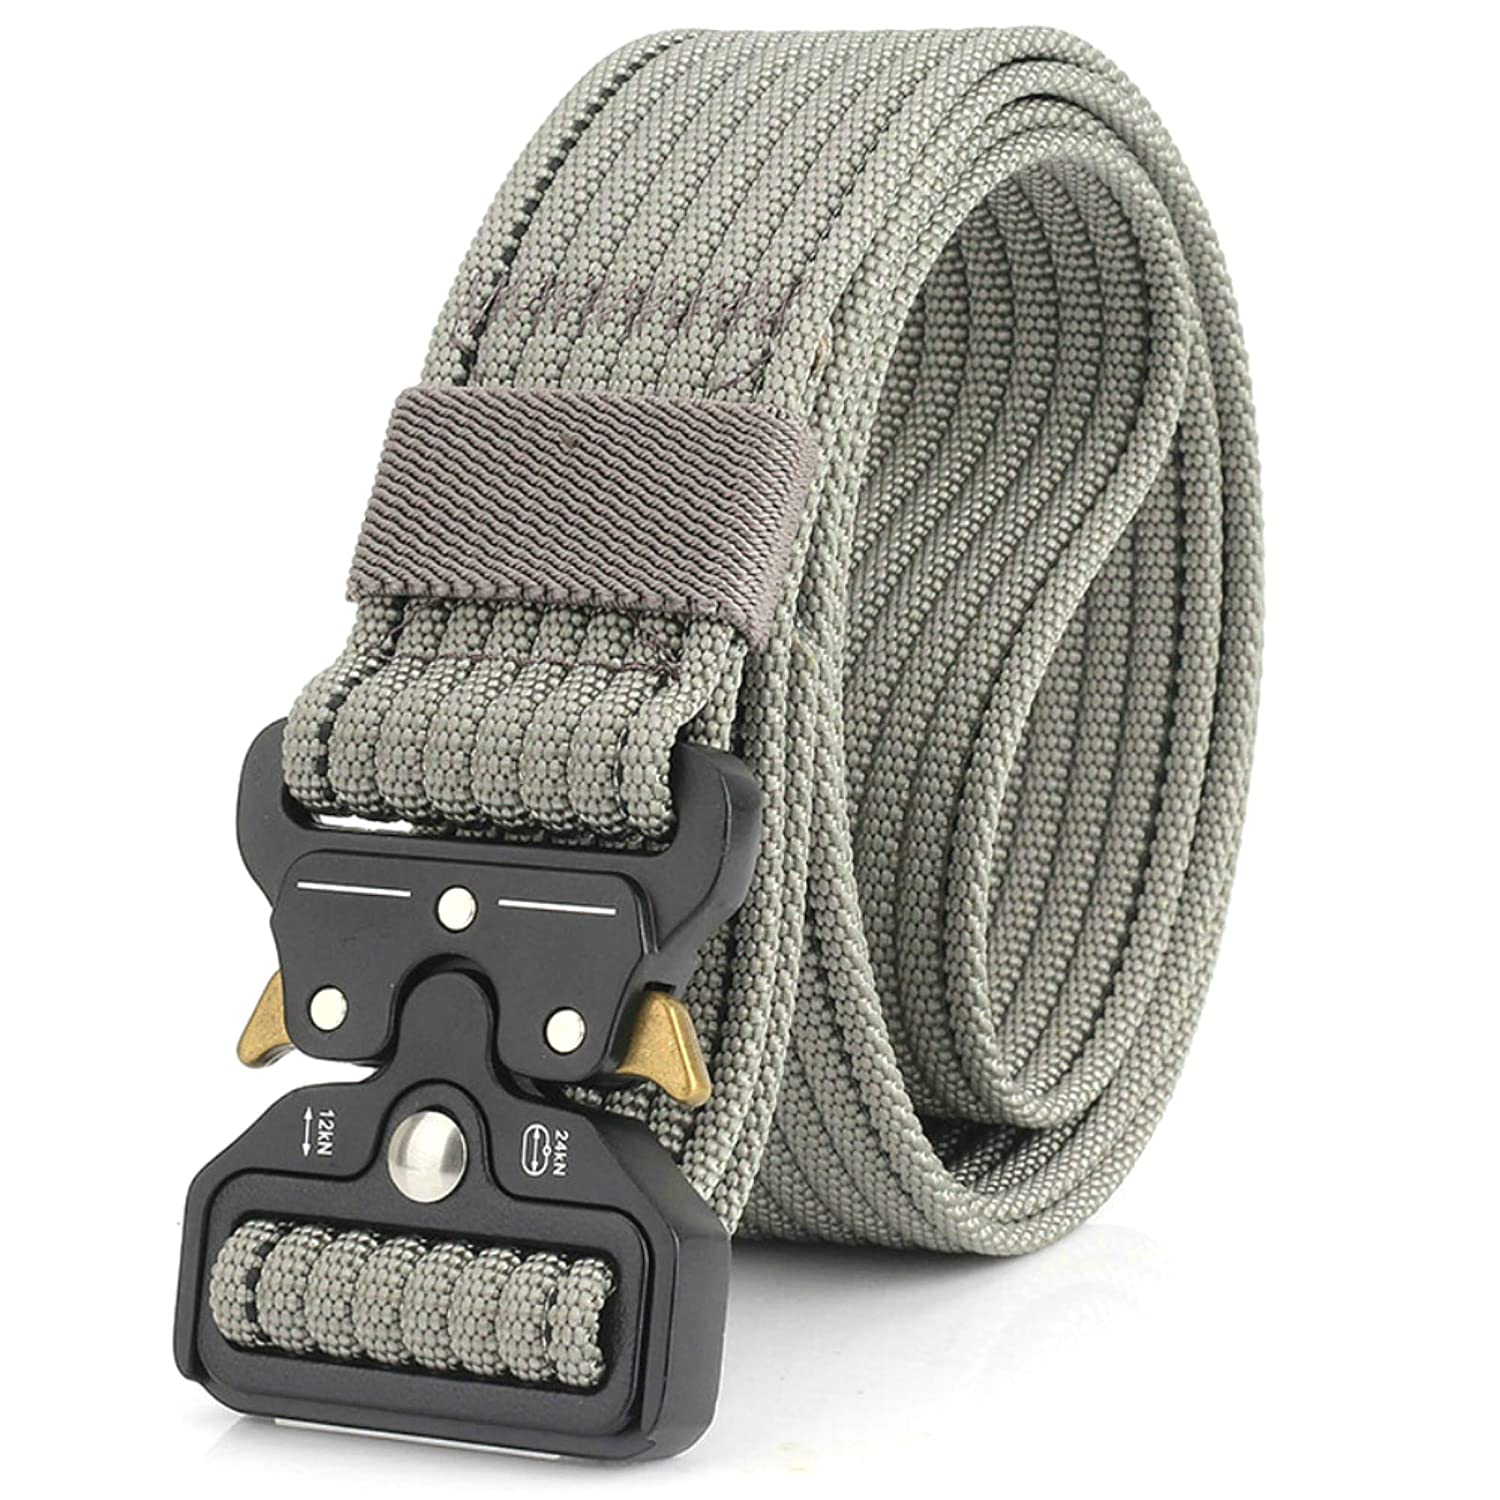 FIEKCOR Tactical Belt 1.75 Tactical Heavy Duty Waist Belt Quick-Release Military Style Shooters Nylon Belts with Metal Buckle